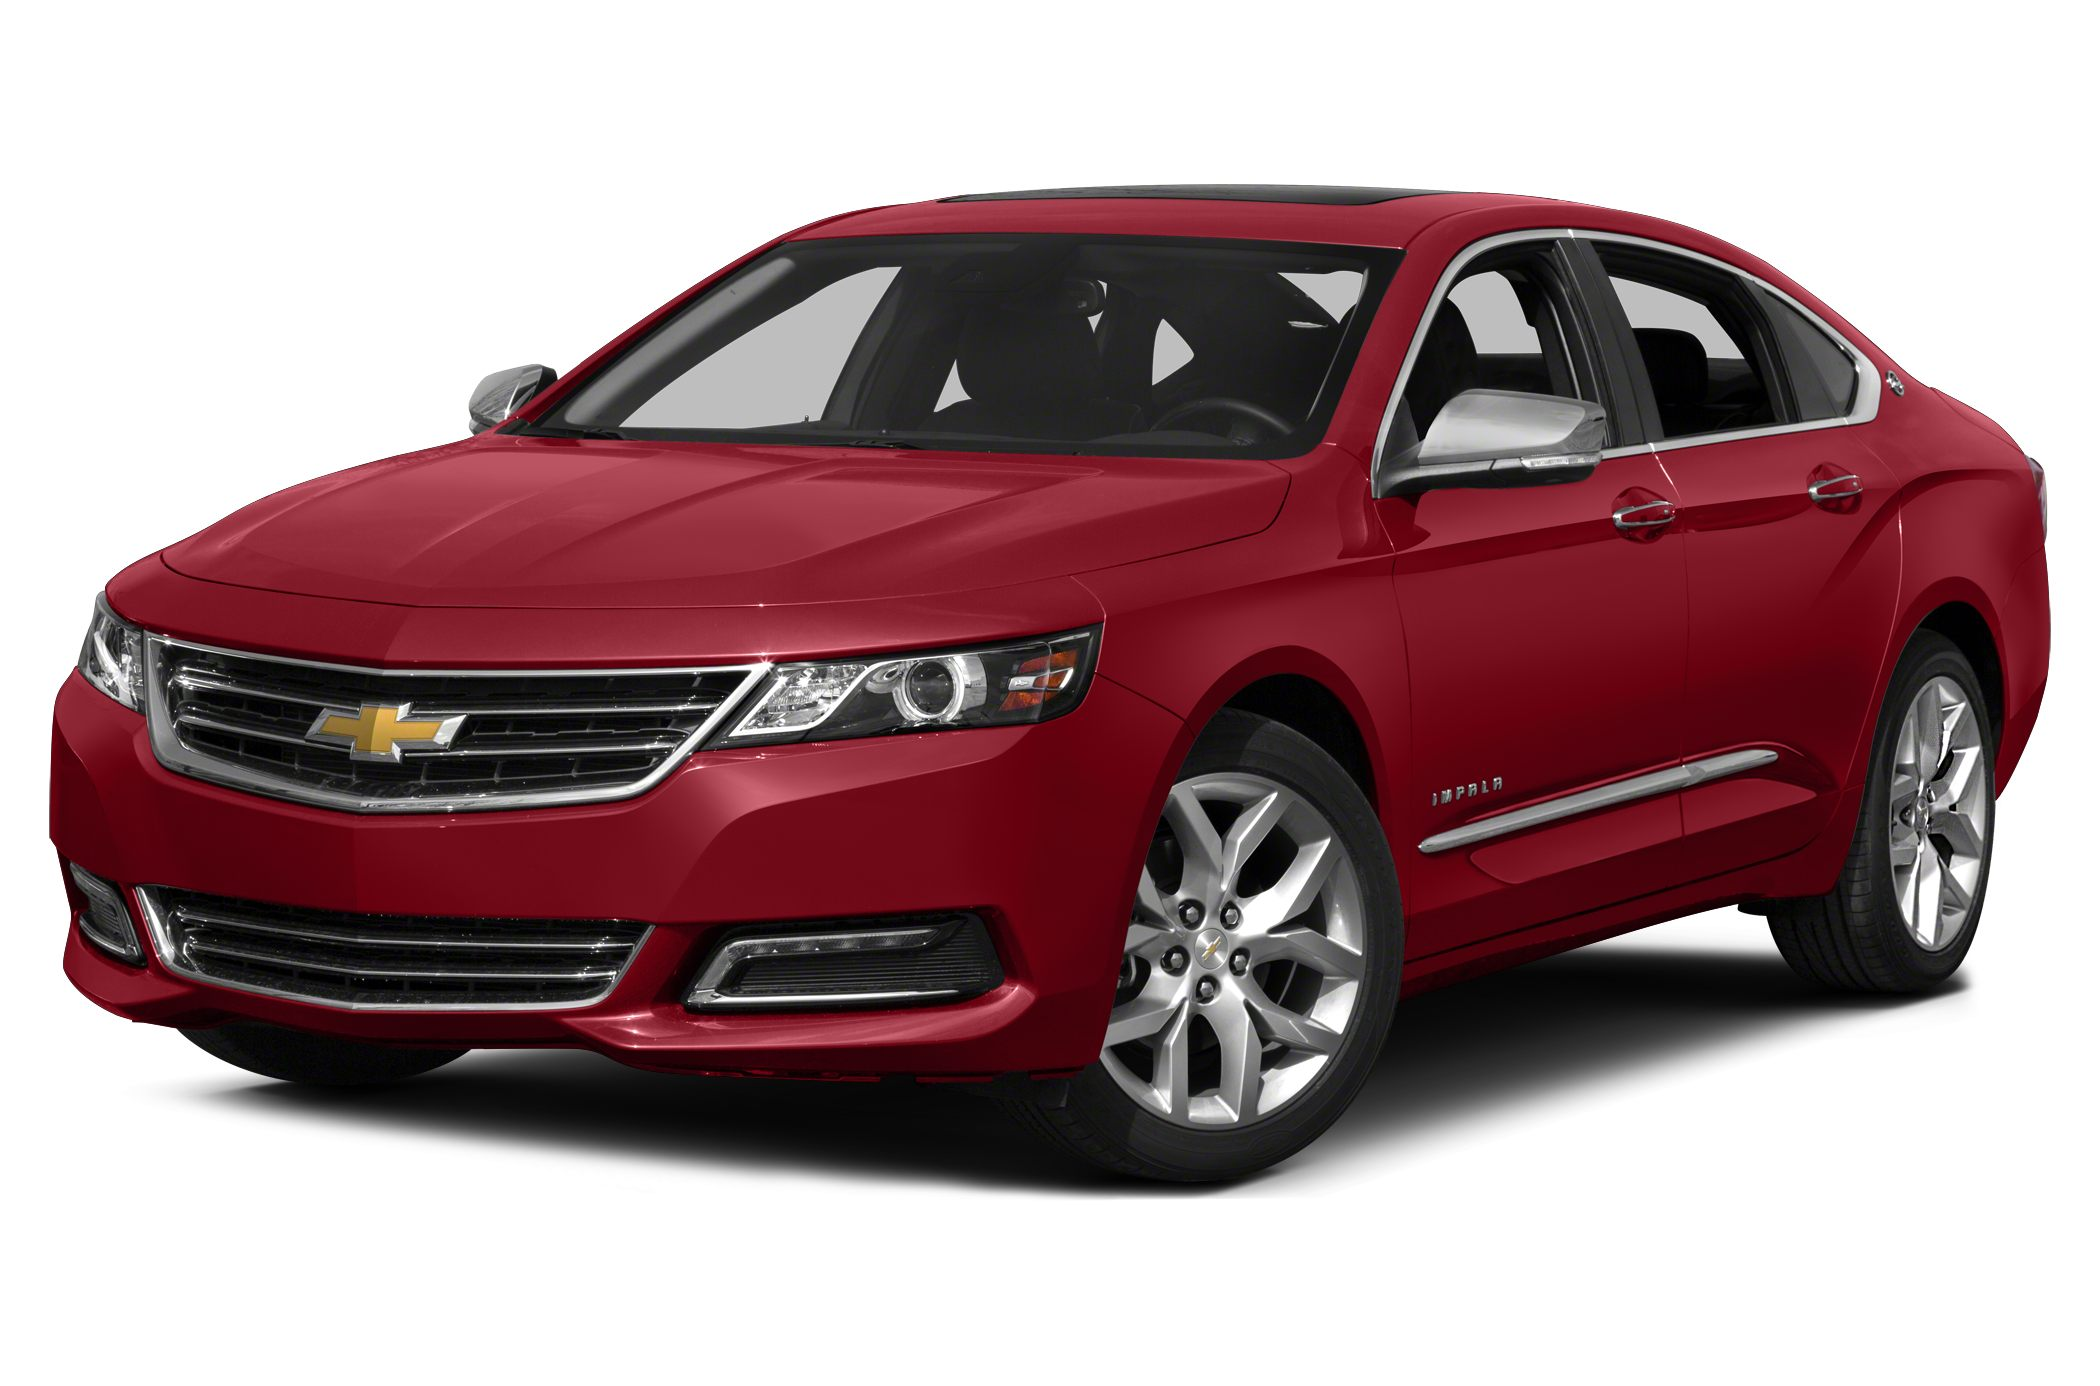 2014 Chevrolet Impala 1LS Sedan for sale in Tifton for $27,685 with 0 miles